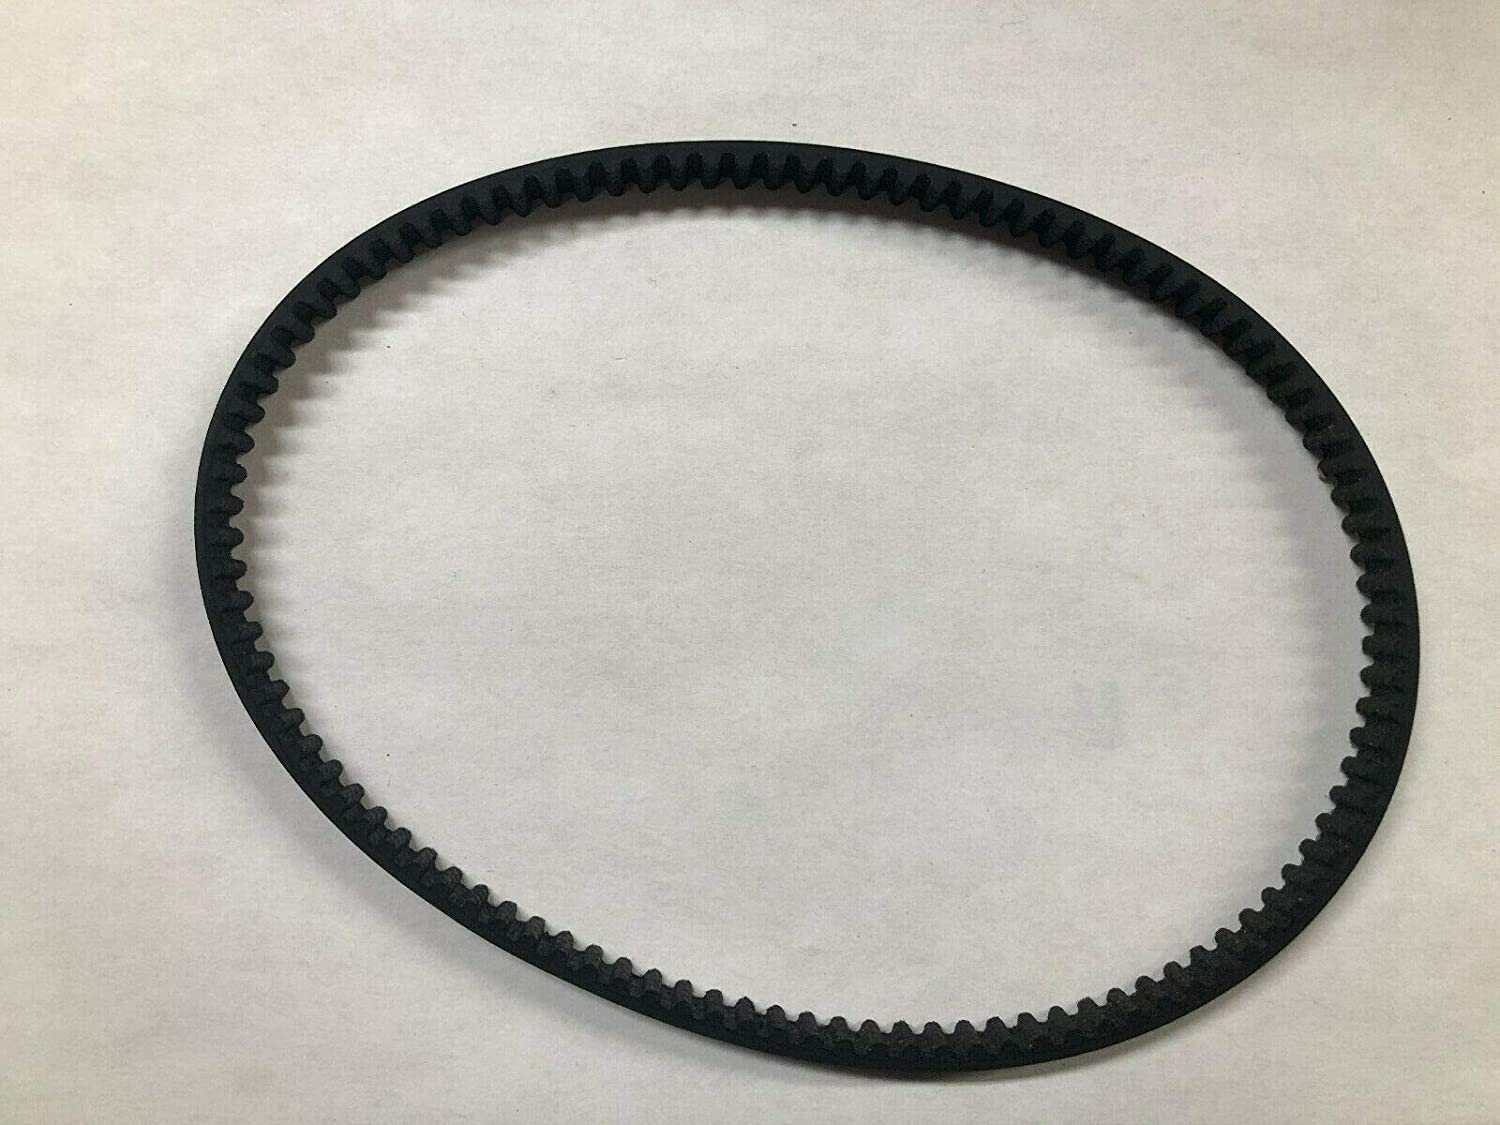 New Replacement Belt for RIDGID R2740 Tampa Mall Max 53% OFF Sande